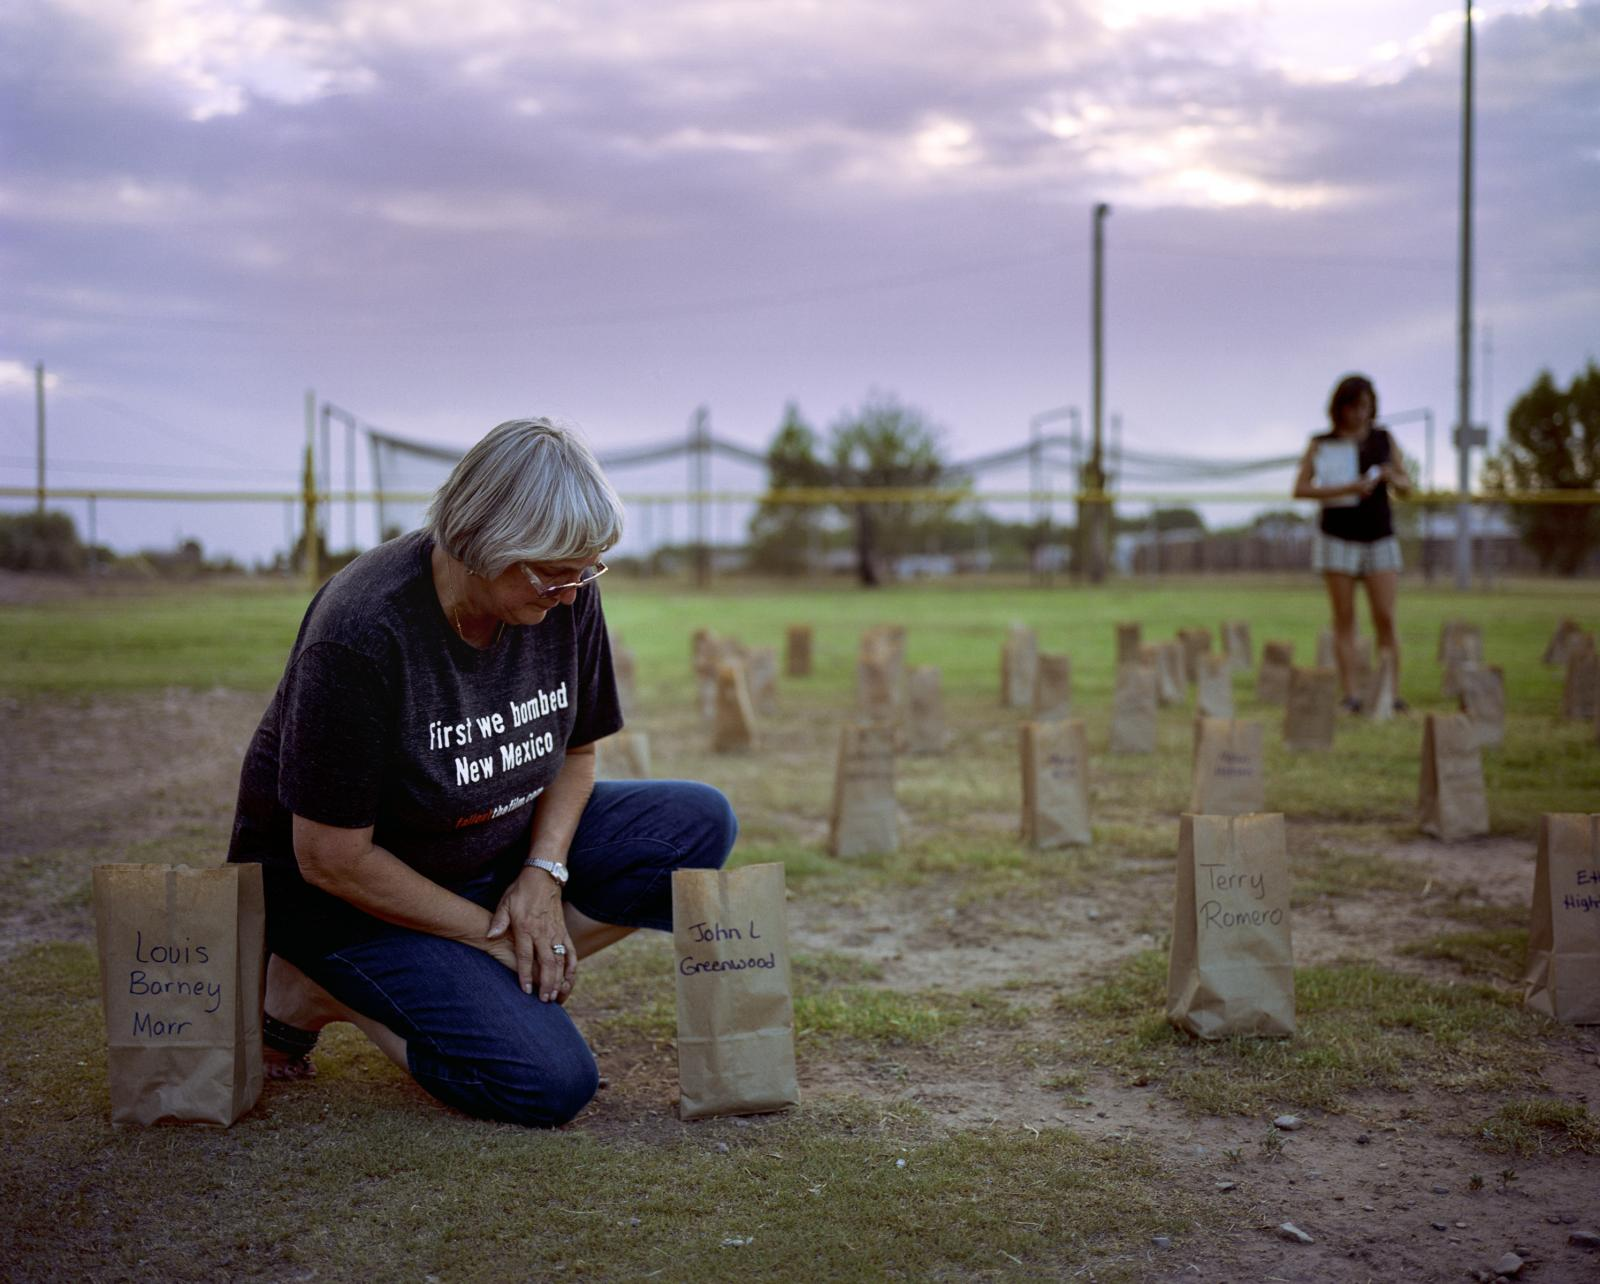 Laura Greenwood, Tularosa, New Mexico, USA, July 16, 2016  Laura Greenwood places a candle in a lantern for her husband John Greenwood who died in 2012. He was the12th member of his family to die of cancer. He grew up in Alamogordo, New Mexico, is 75 miles from the Trinity Site.  Each year, Laura drives from Texas for the July 16 candlelight vigil held in Tularosa to memorialize the people they have lost to cancer and other illnesses related to radiation exposure.